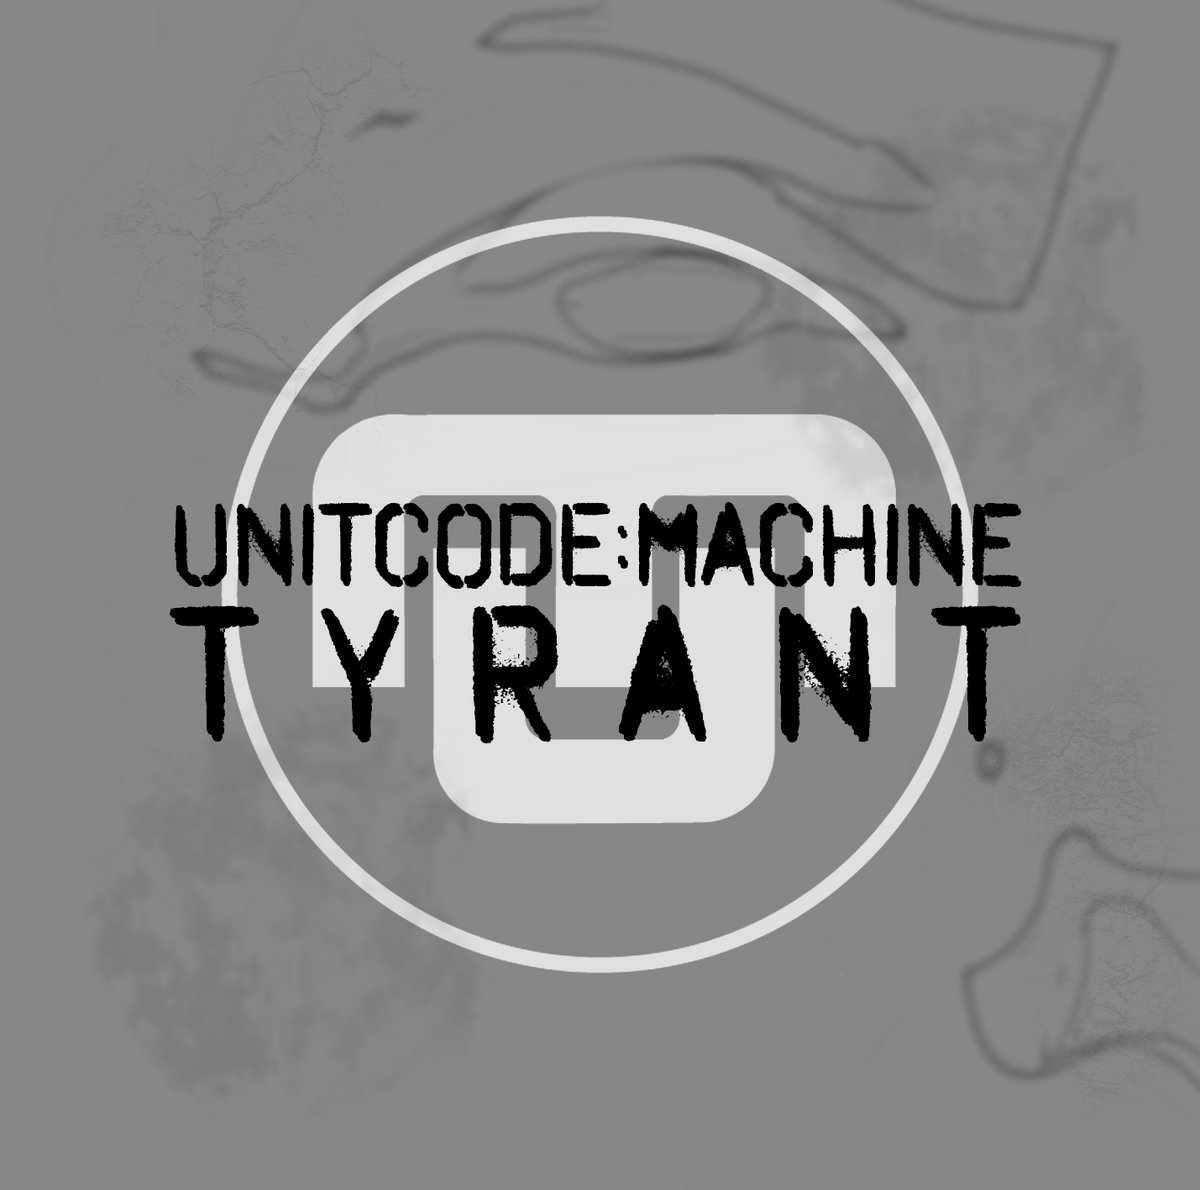 Unitcode:Machine - Tyrant - Unitcode:Machine - Tyrant